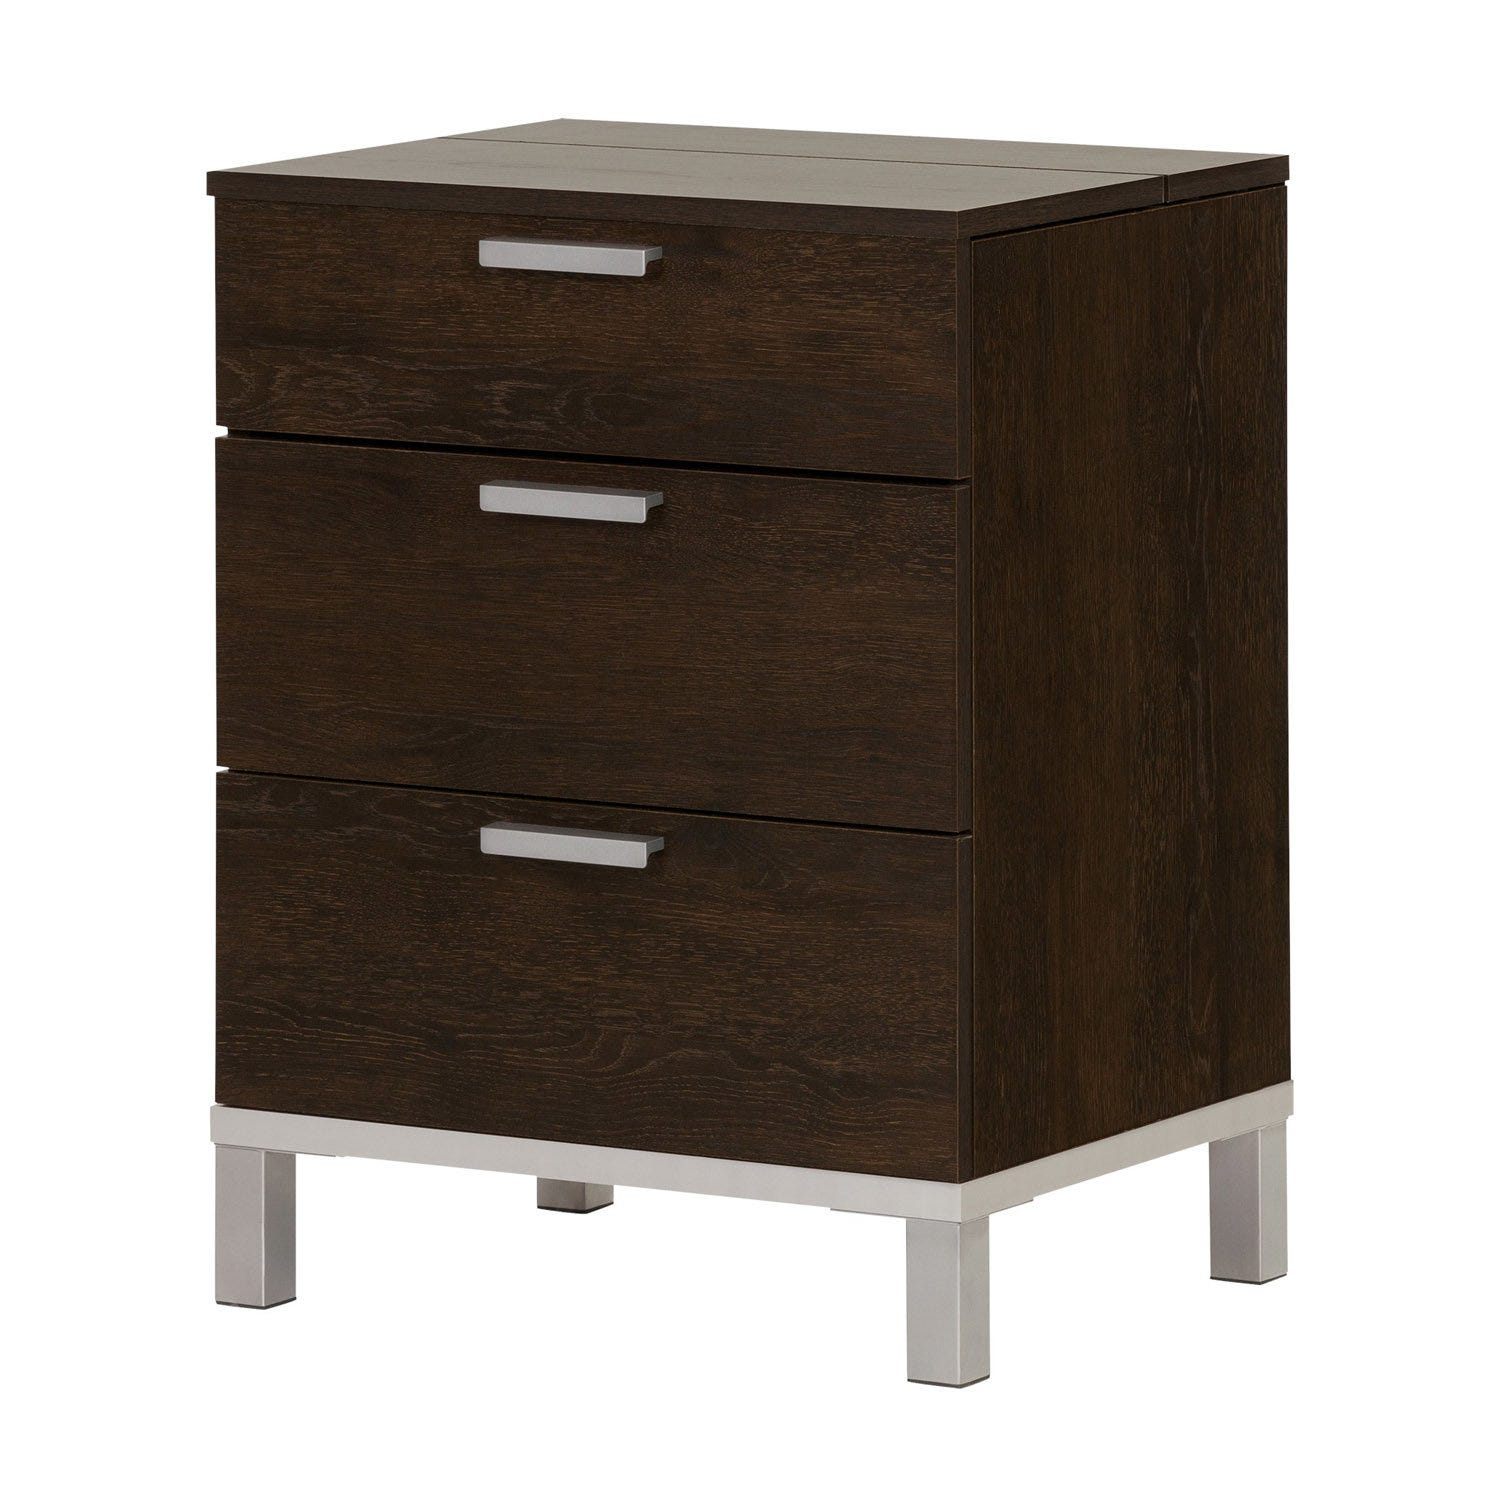 Meubles South Shore Nightstand With Charging Station And Drawers